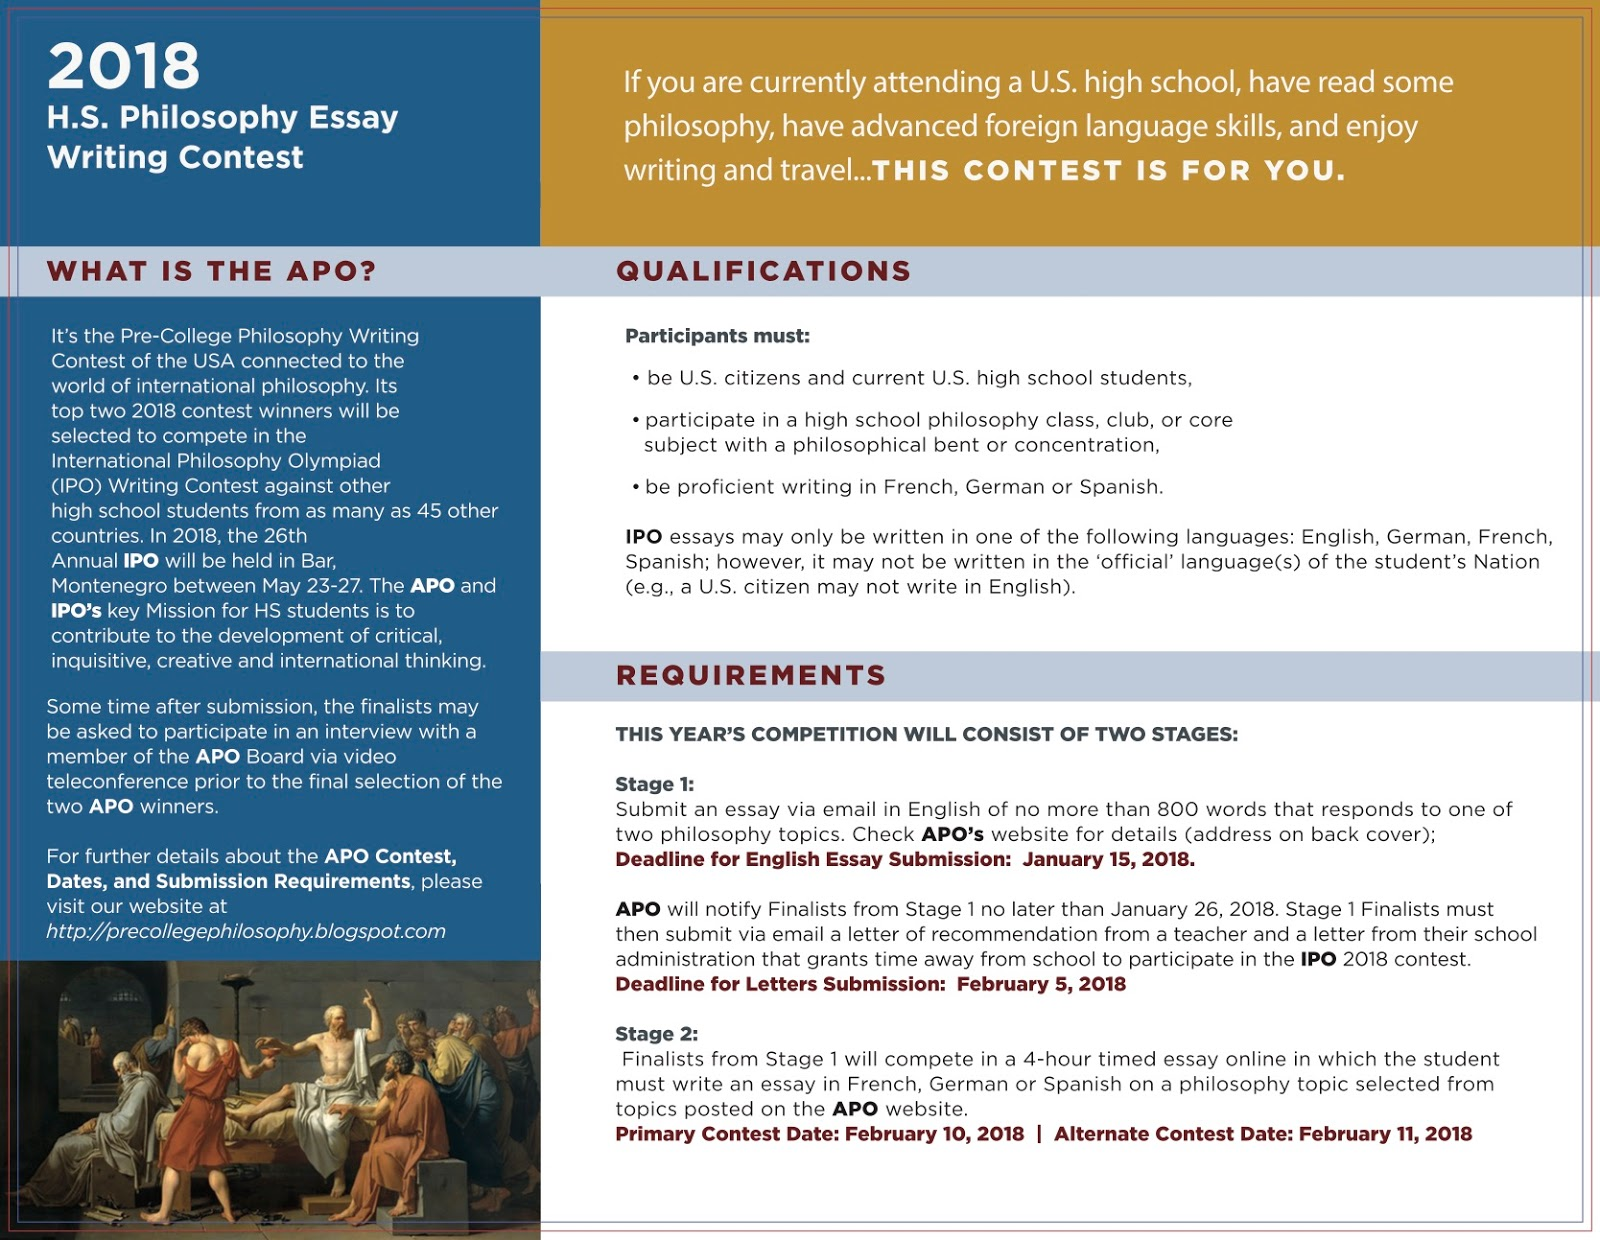 economics essay competition 2009 ThePensters Essay Writing Contest, 2018